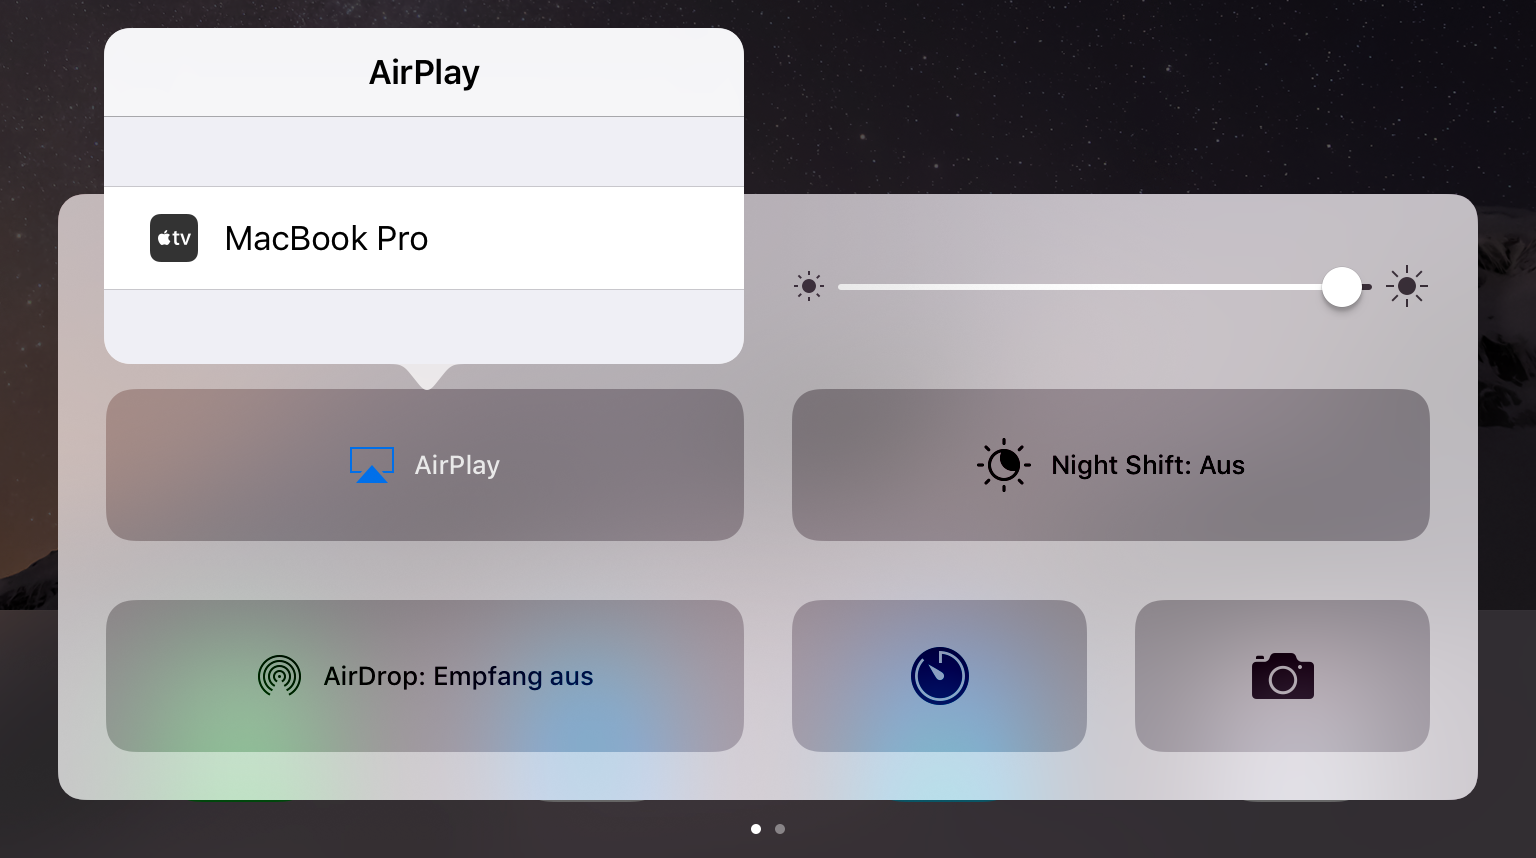 Kontrollzentrum > AirPlay